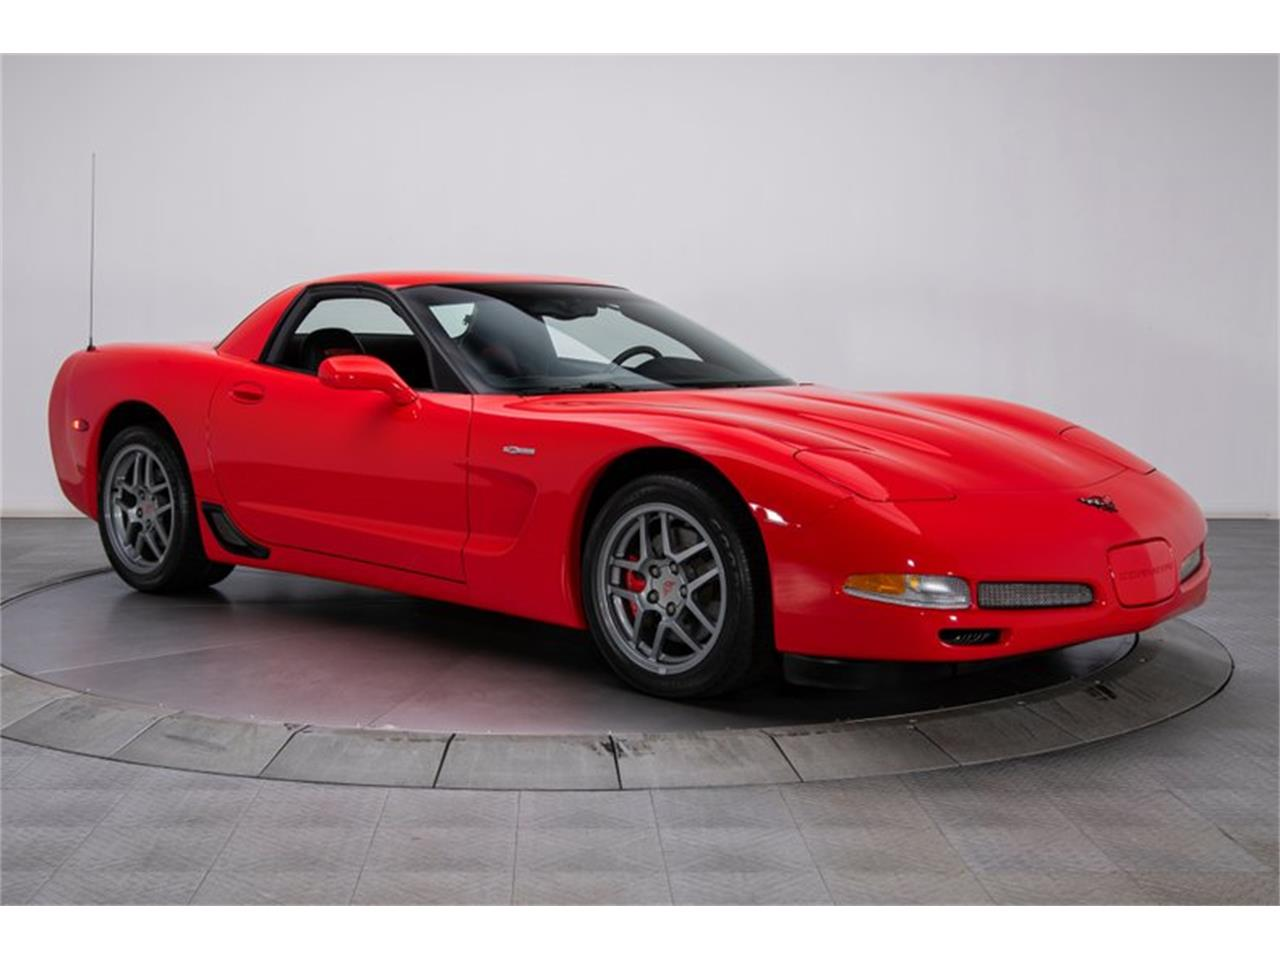 2001 Chevrolet Corvette (CC-1345056) for sale in Charlotte, North Carolina